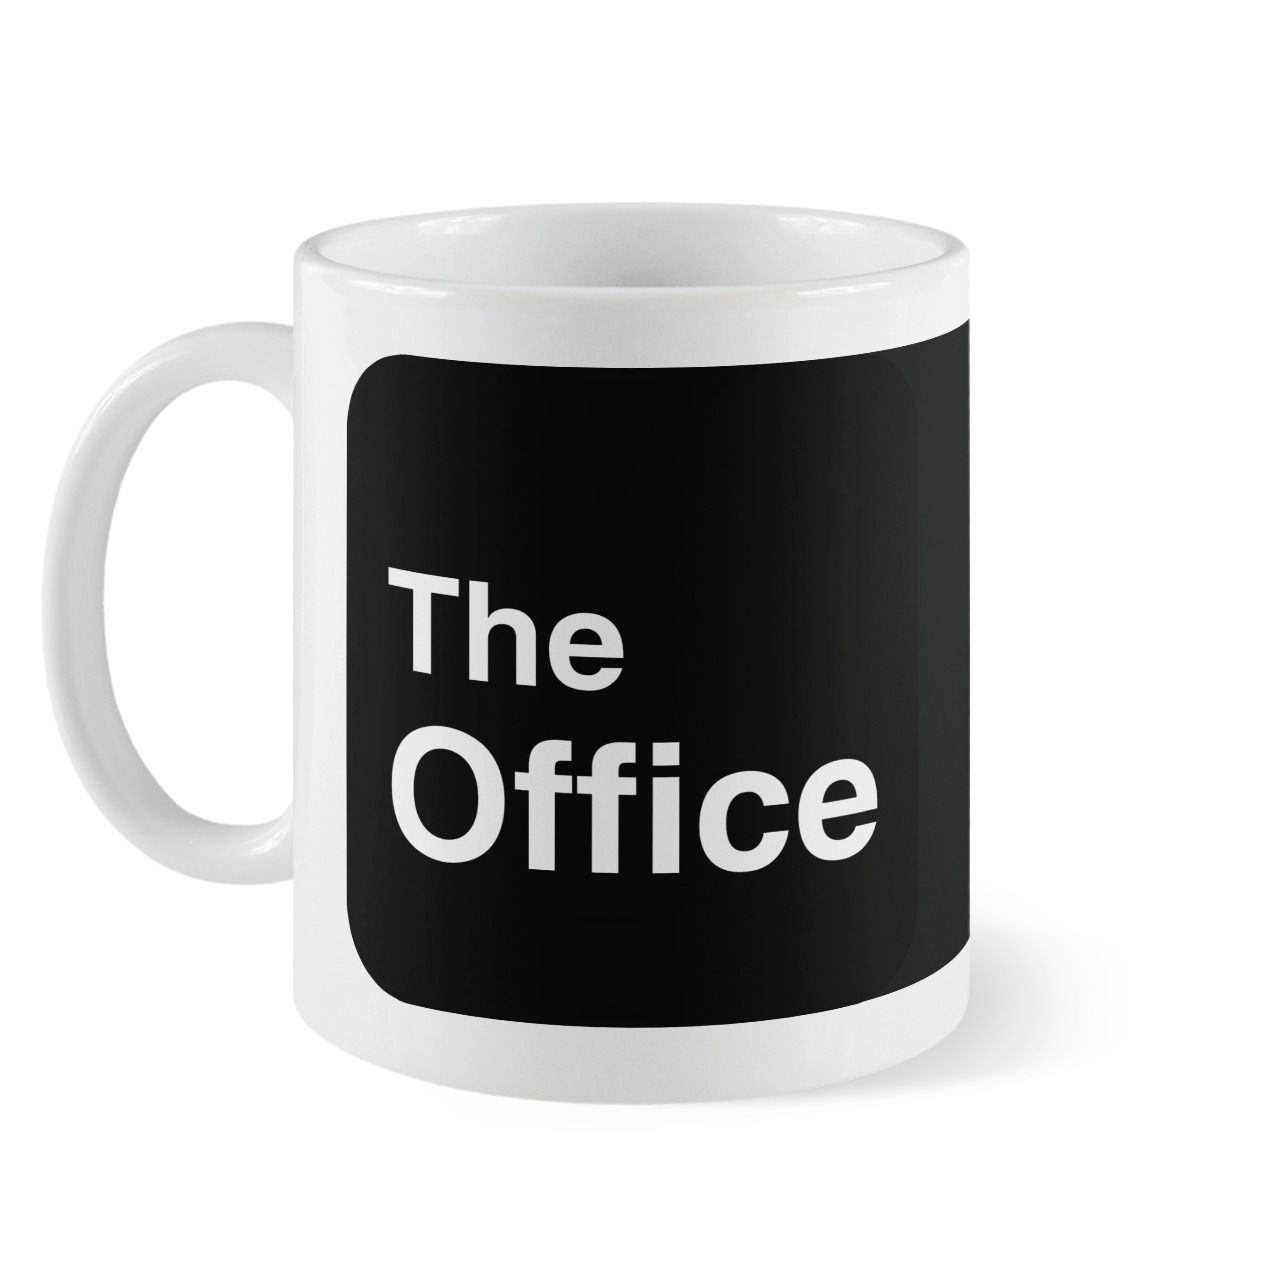 Caneca The Office: The Office - Exclusiva ToyShow